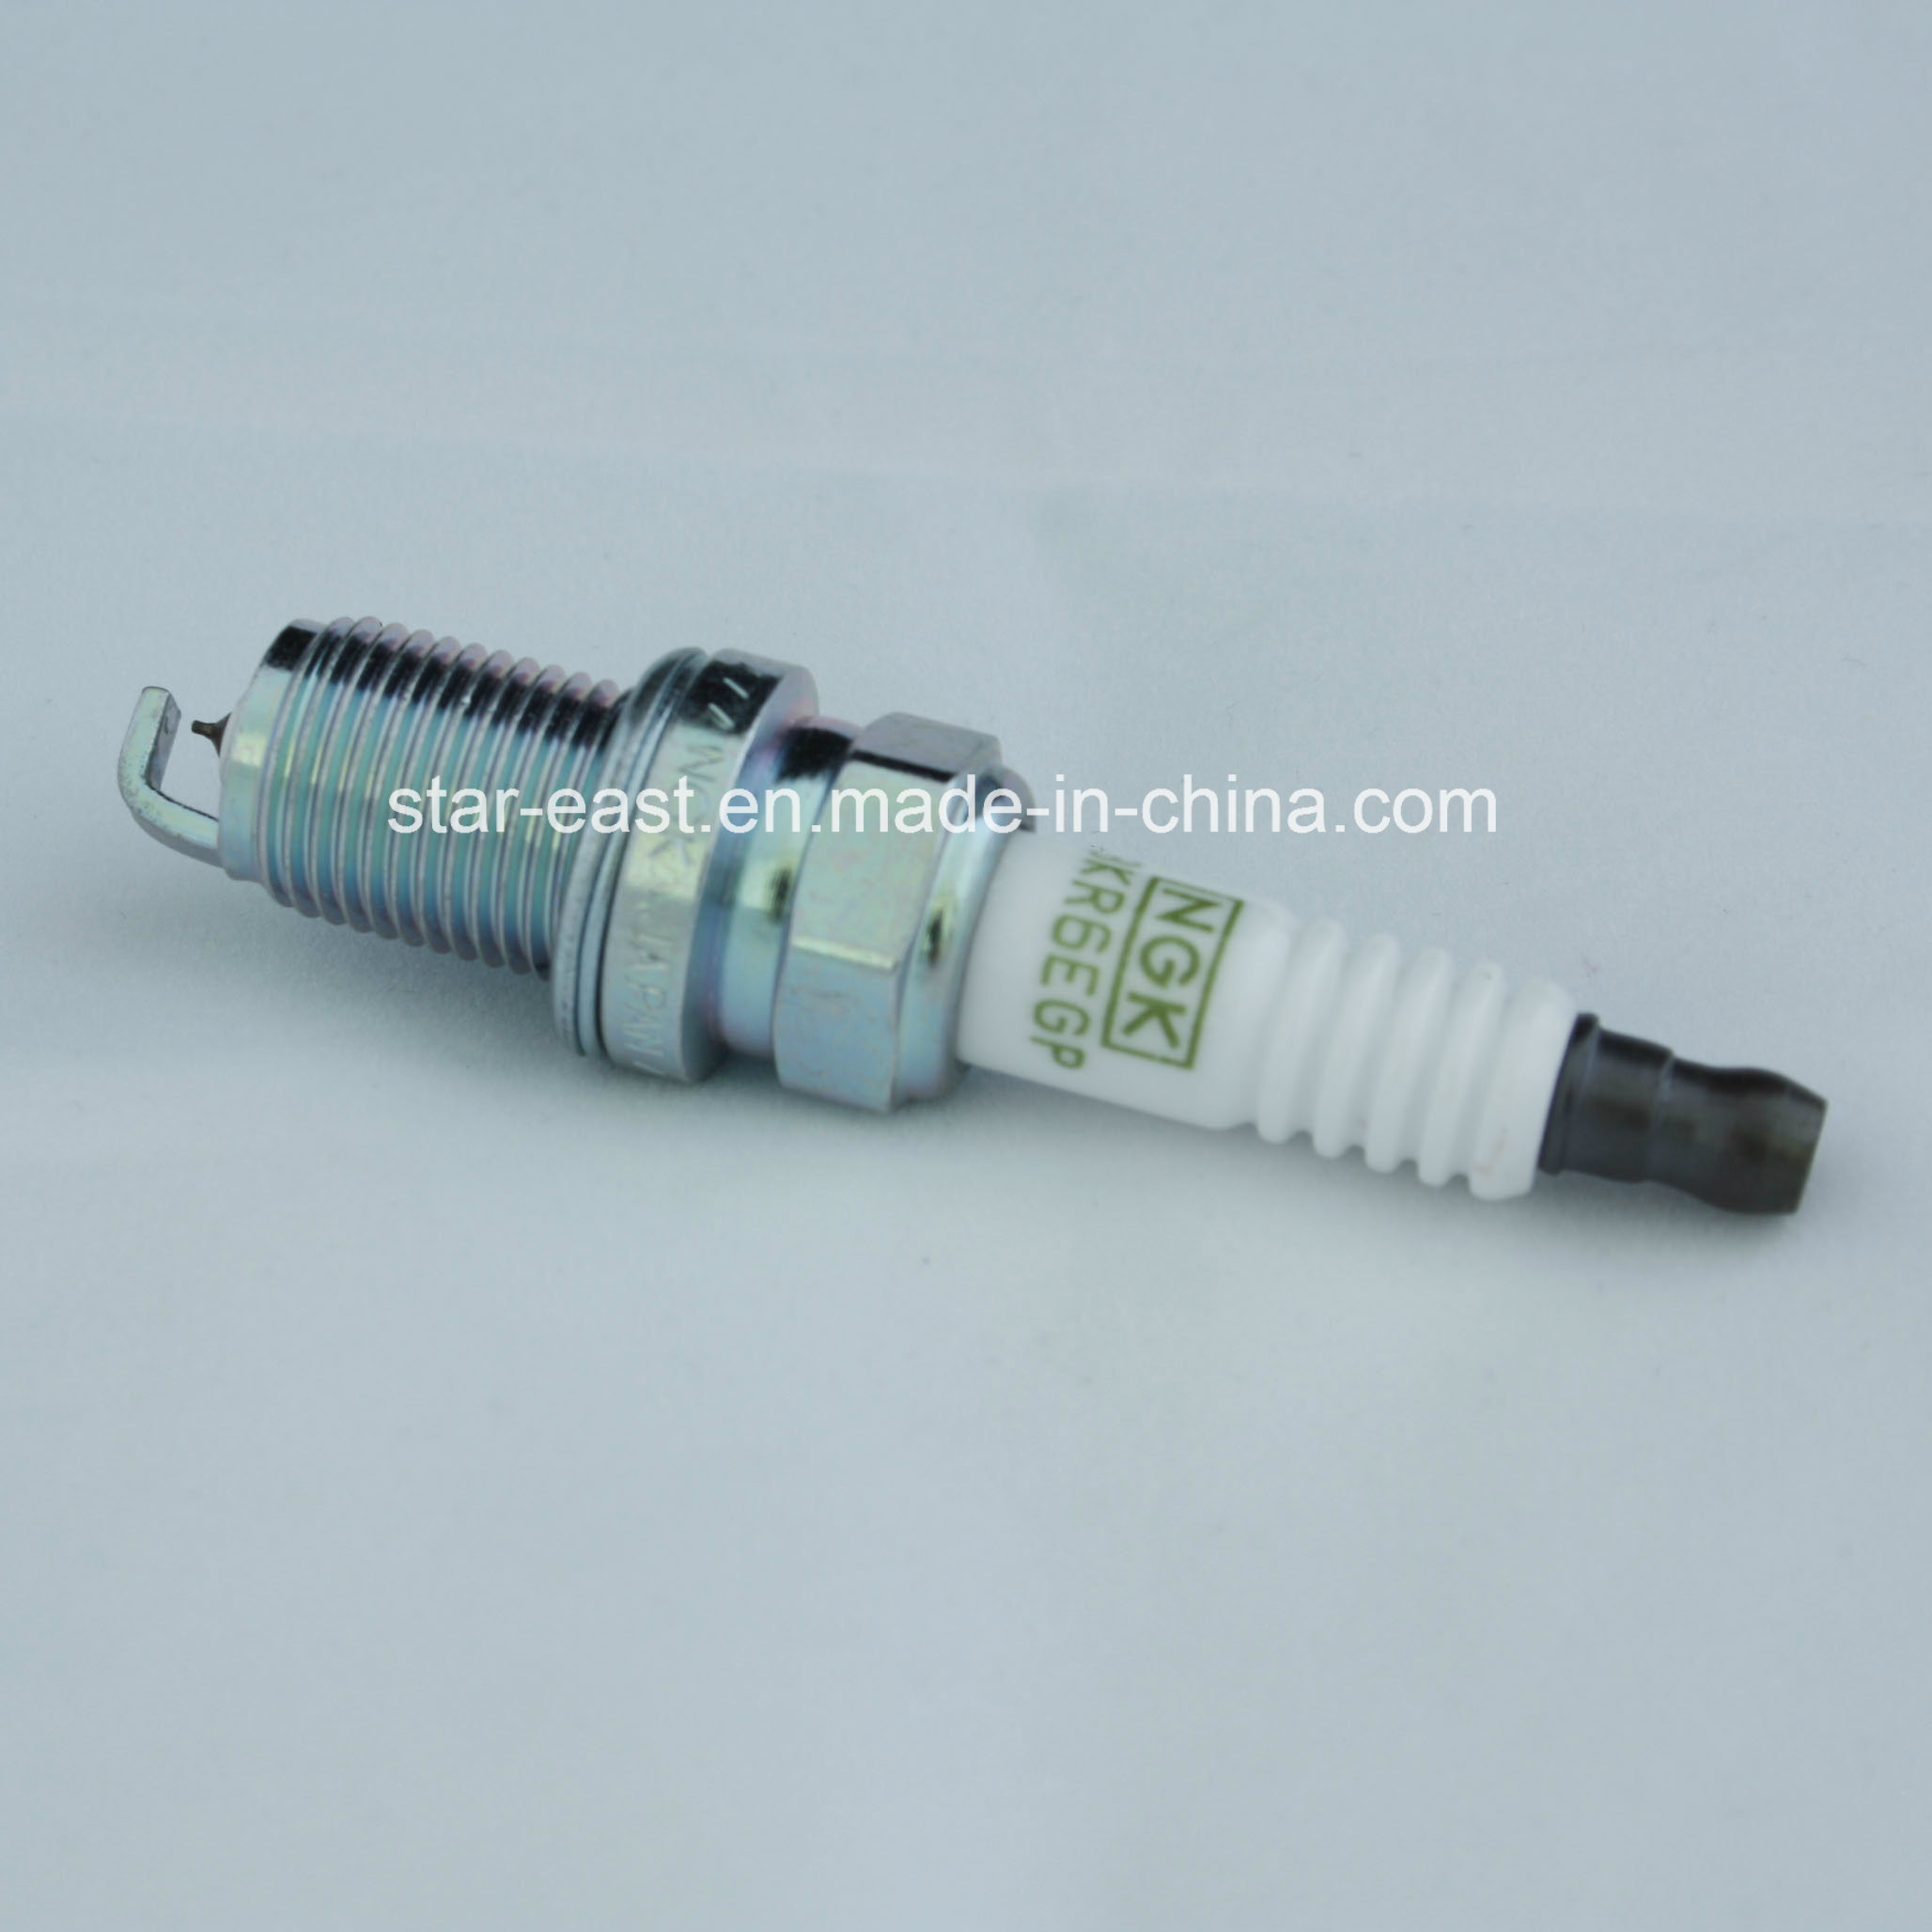 Hight Quality Spark Plug for Bkr6egp 7092 Mitsubishi/ Nissan/Toyota pictures & photos